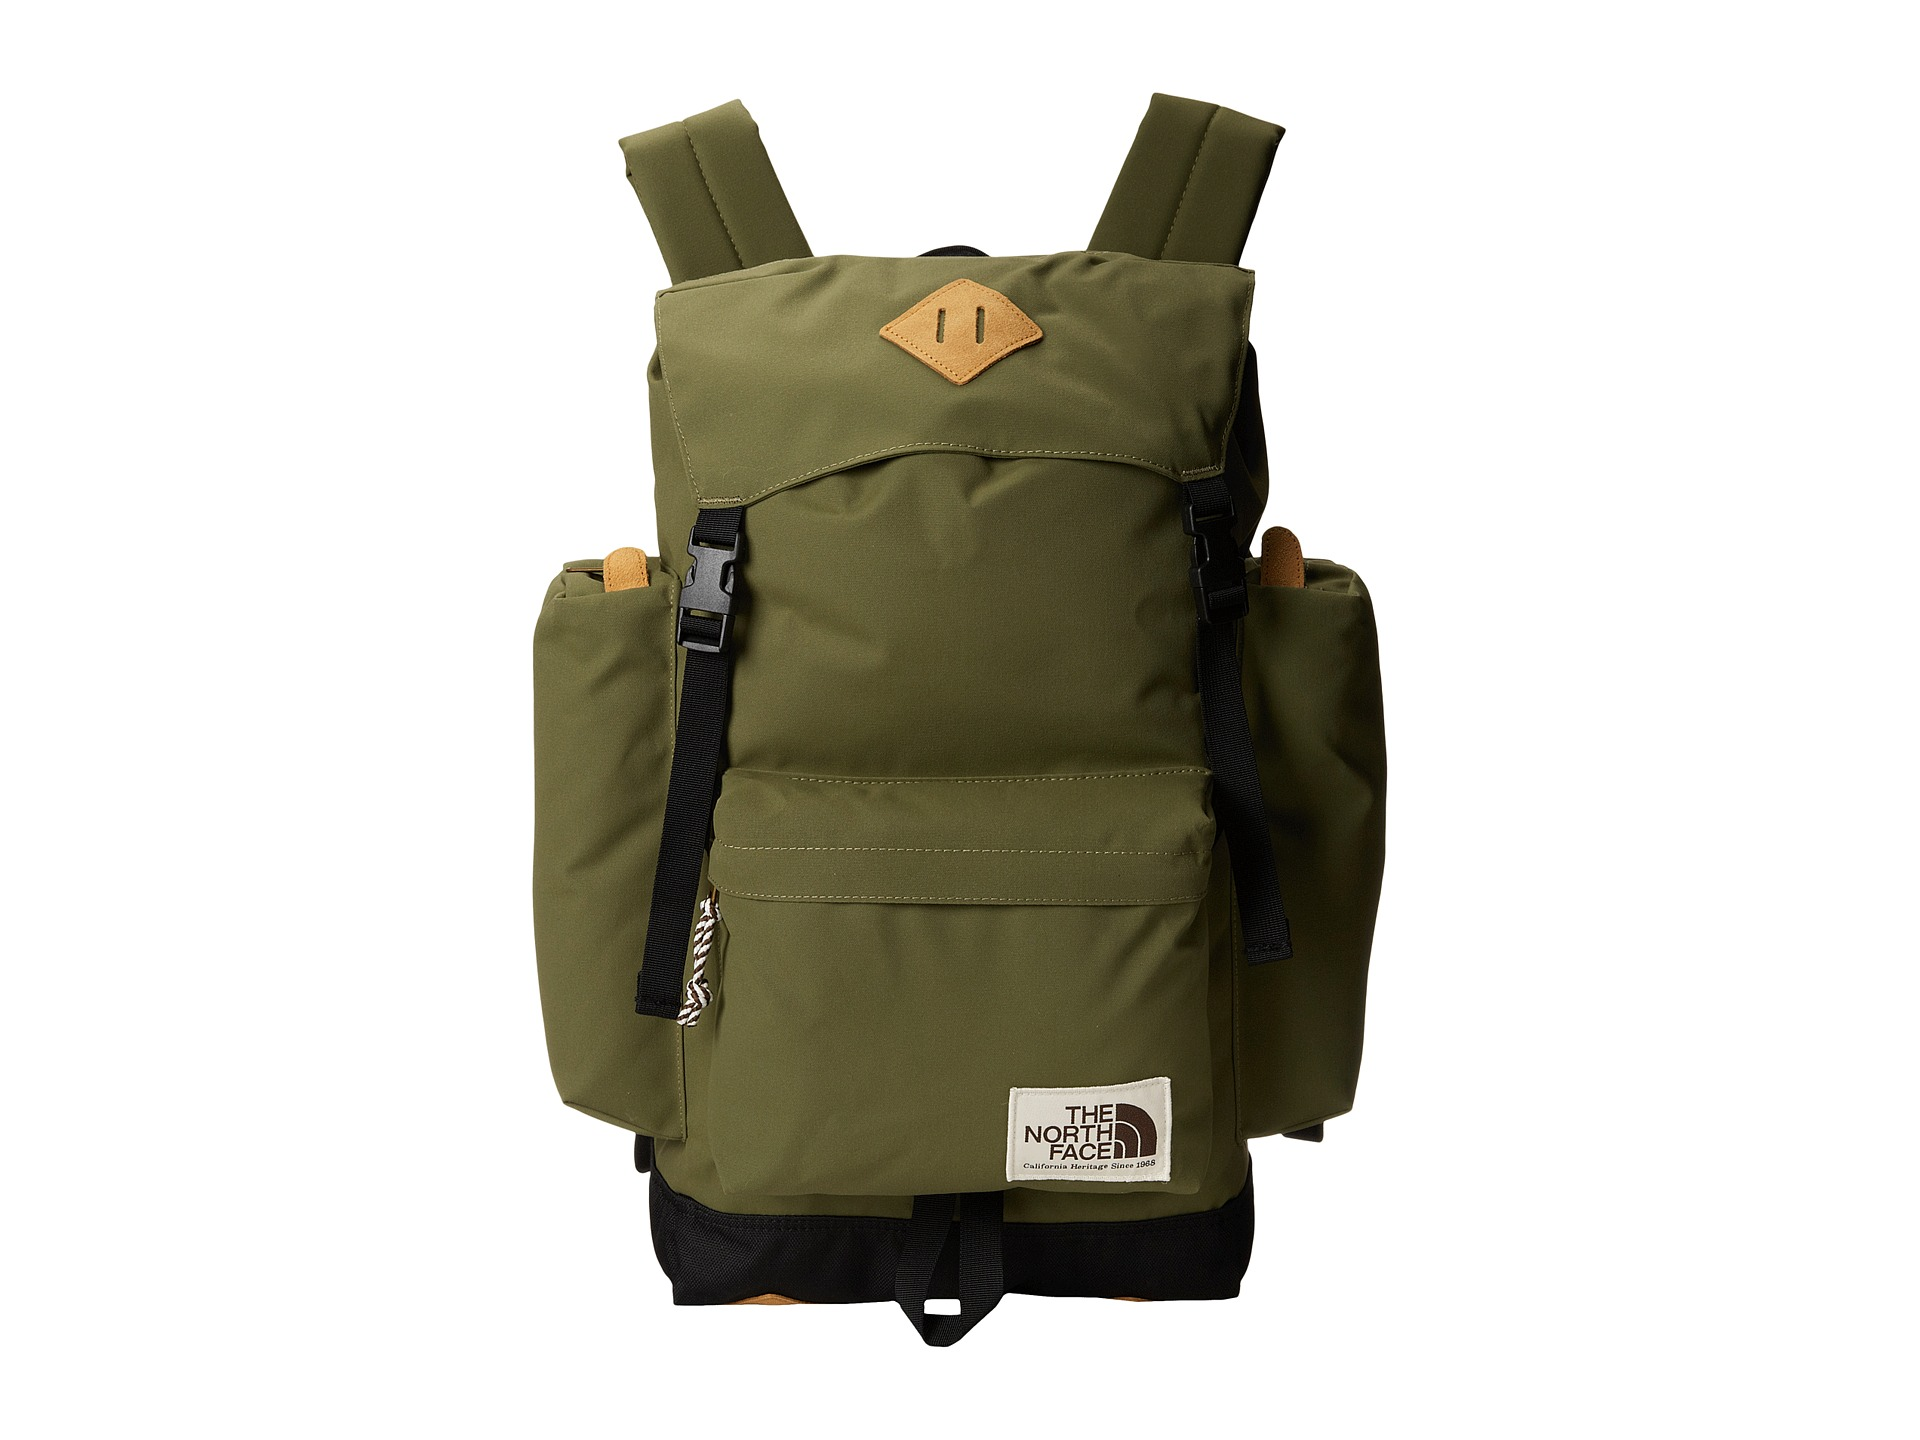 the north face rucksack free shipping both ways. Black Bedroom Furniture Sets. Home Design Ideas